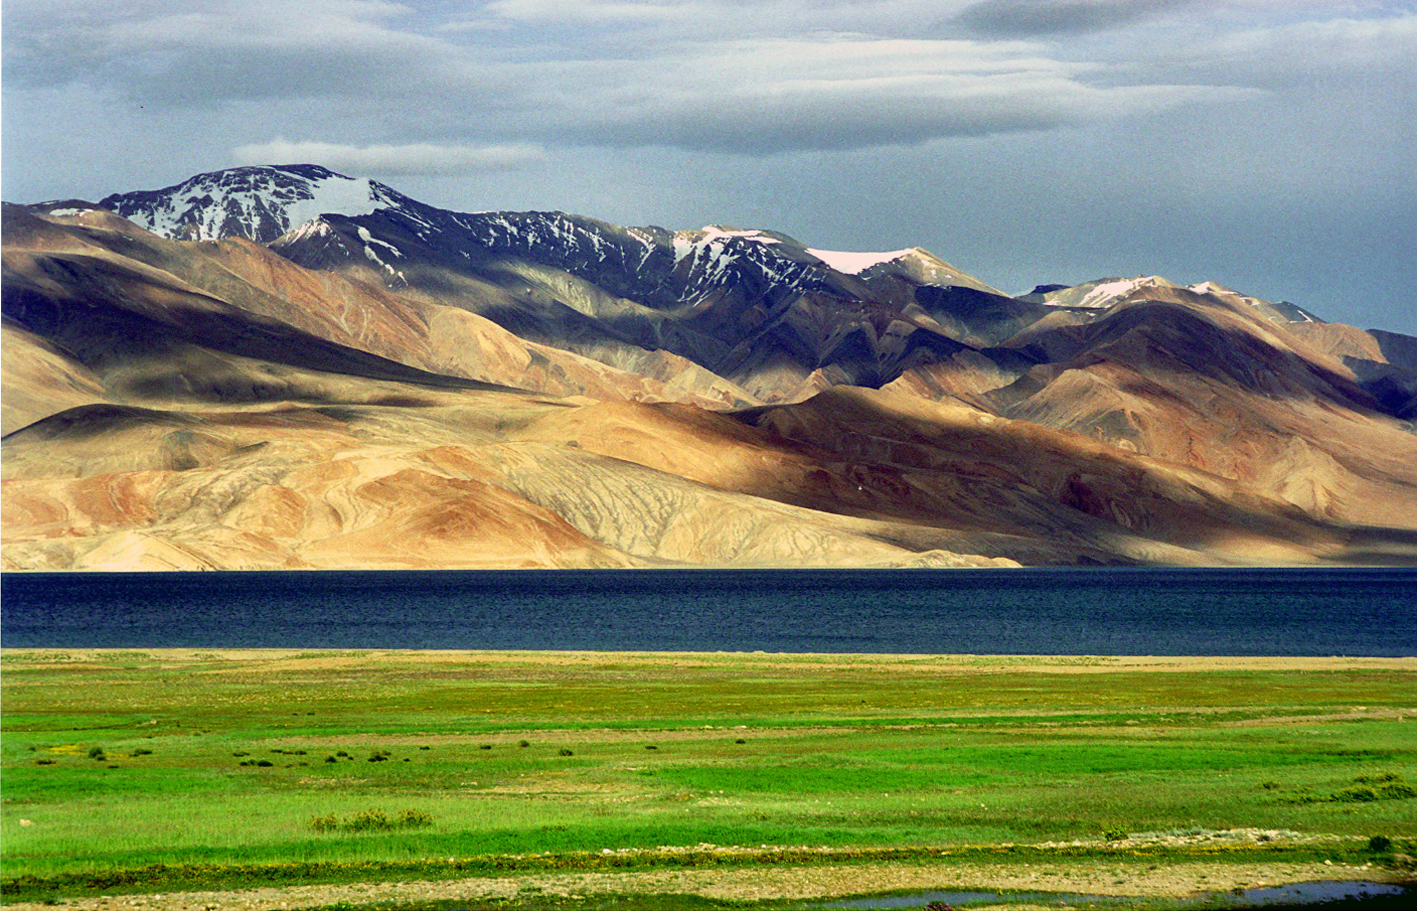 Lake_Tso_Mirori_India_Ladhak_Tibet(China_Occupied_Tibet)_Border